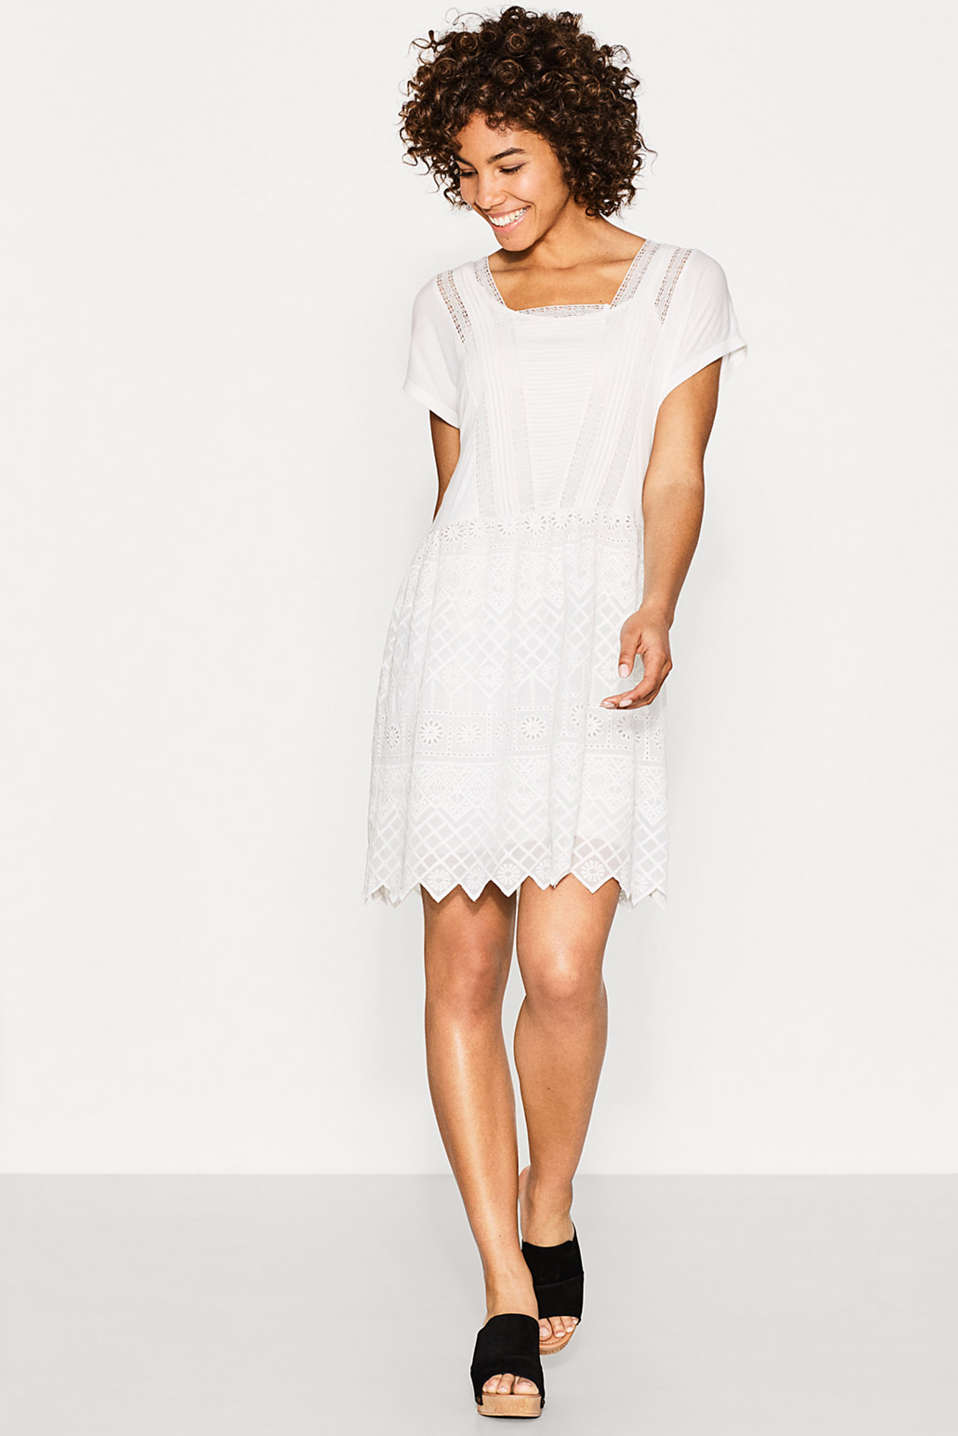 Esprit - Romantic dress with a lace skirt